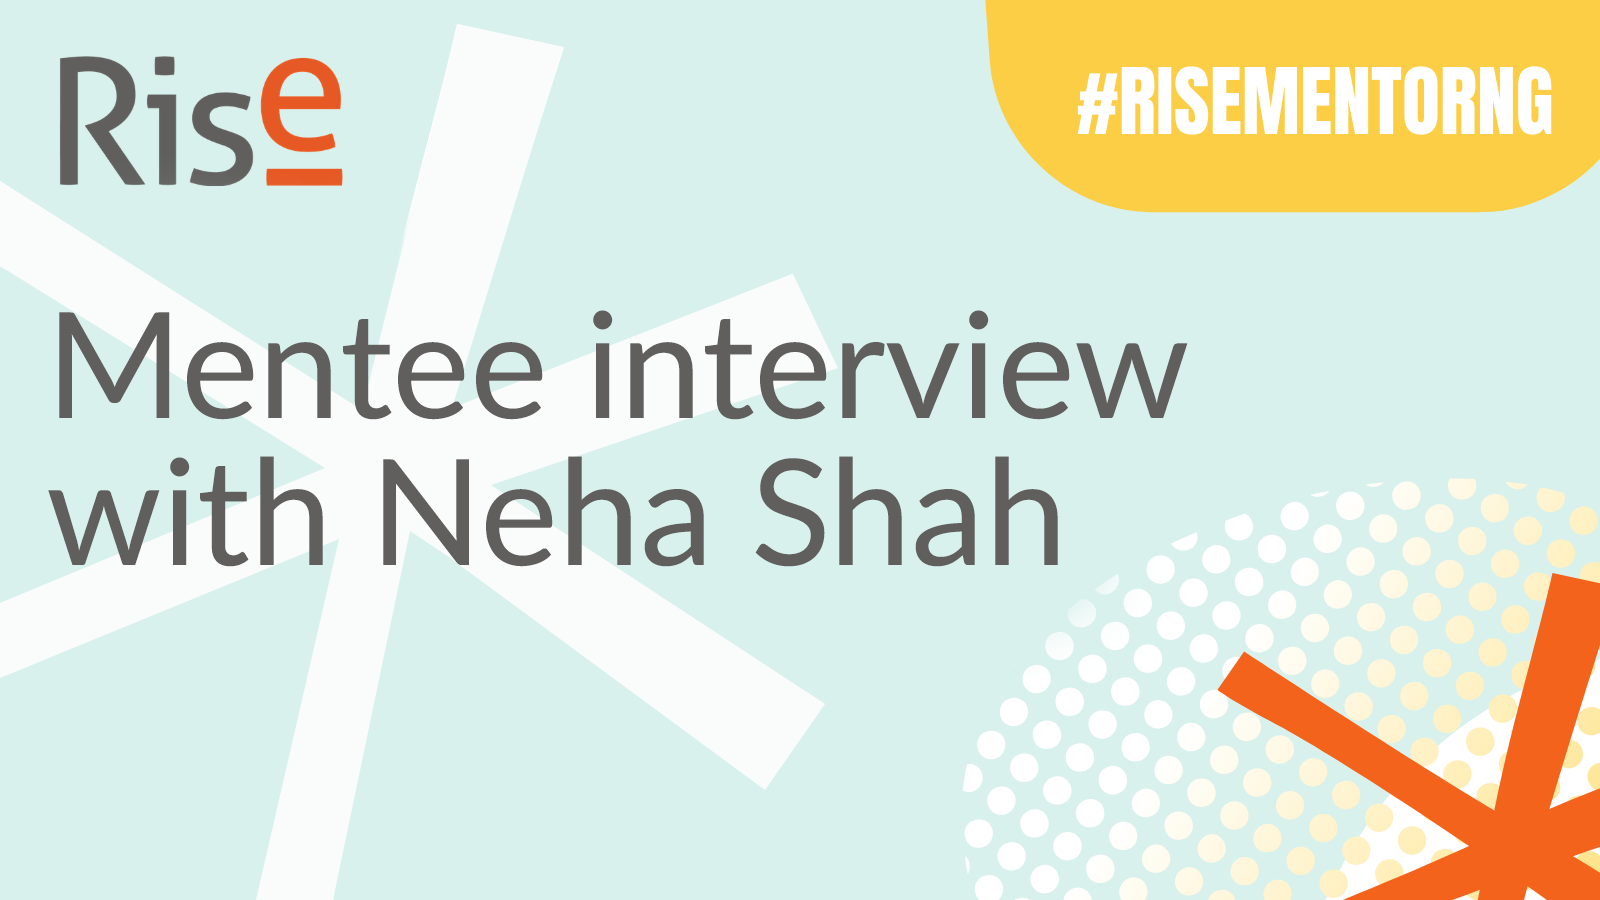 Interview with Neha Shah RISE mentee